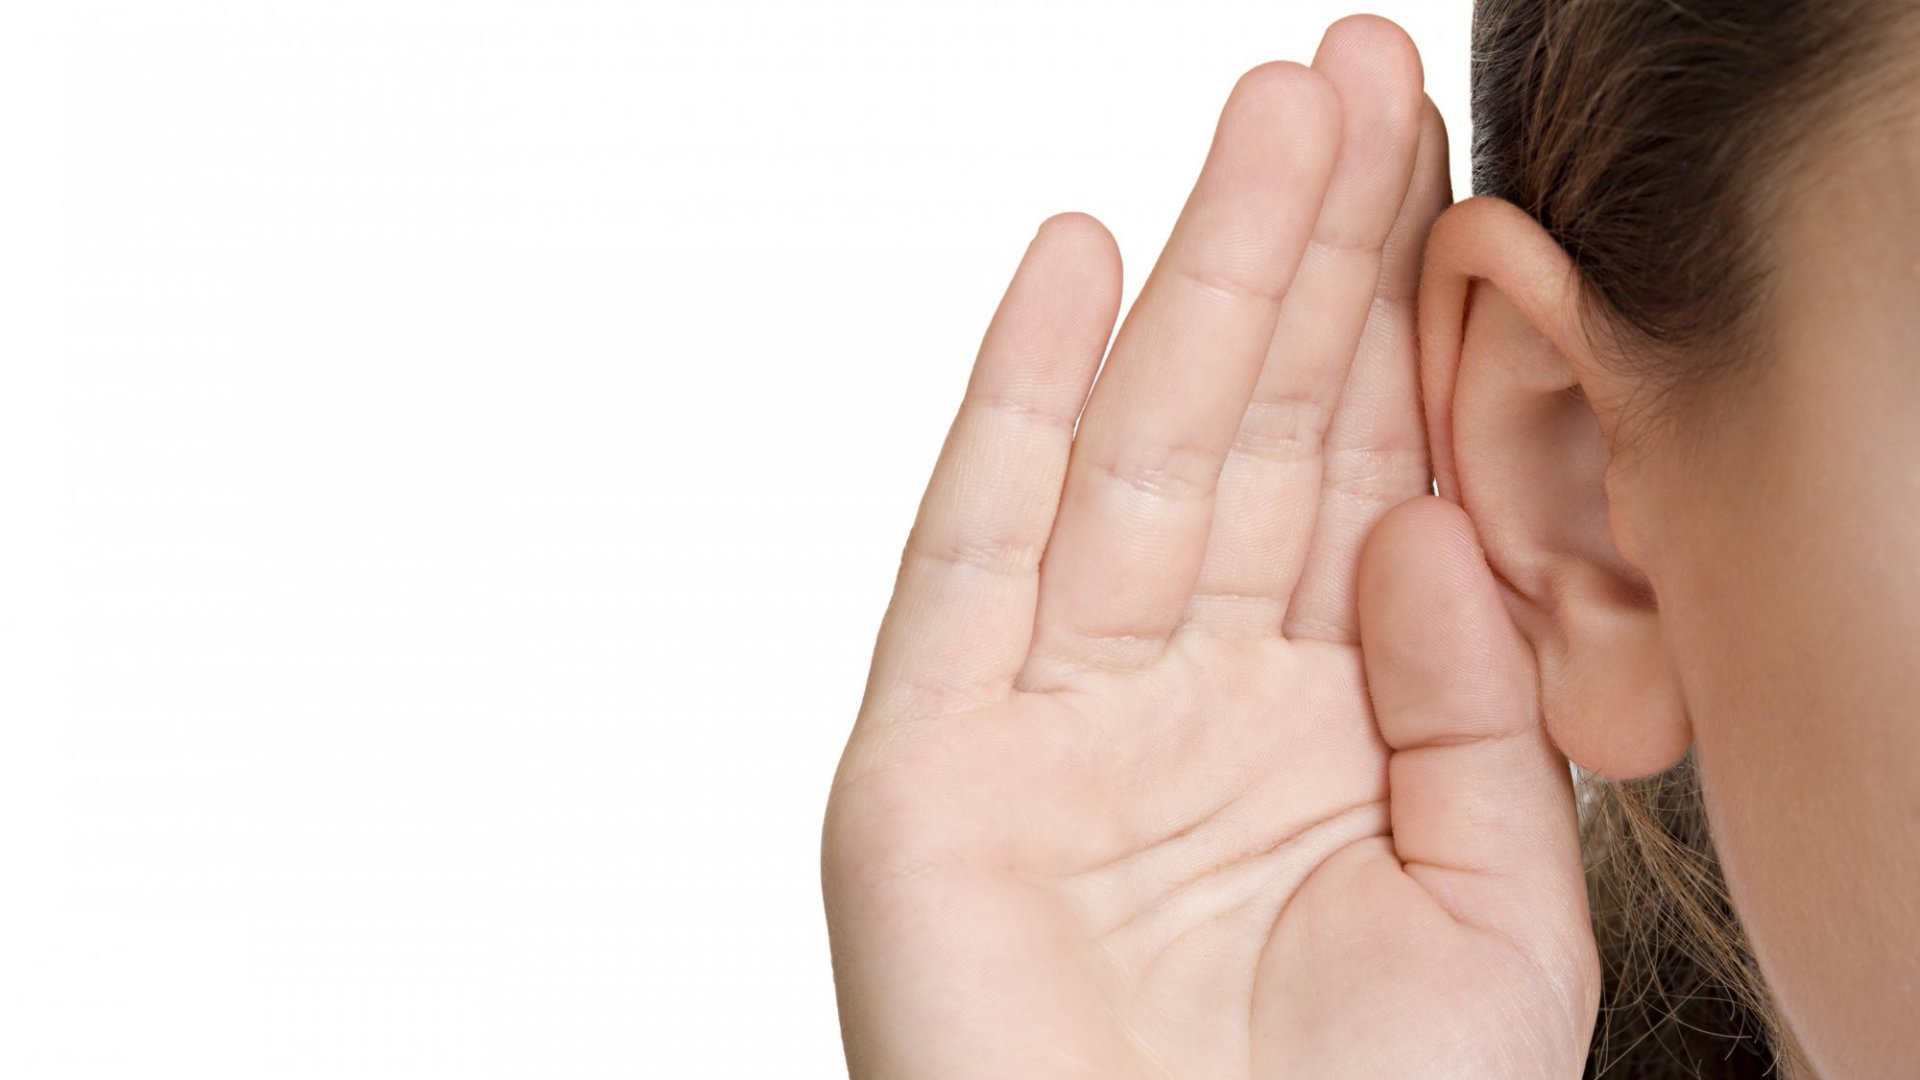 Want to Be a Great Listener? Do This 1 Thing